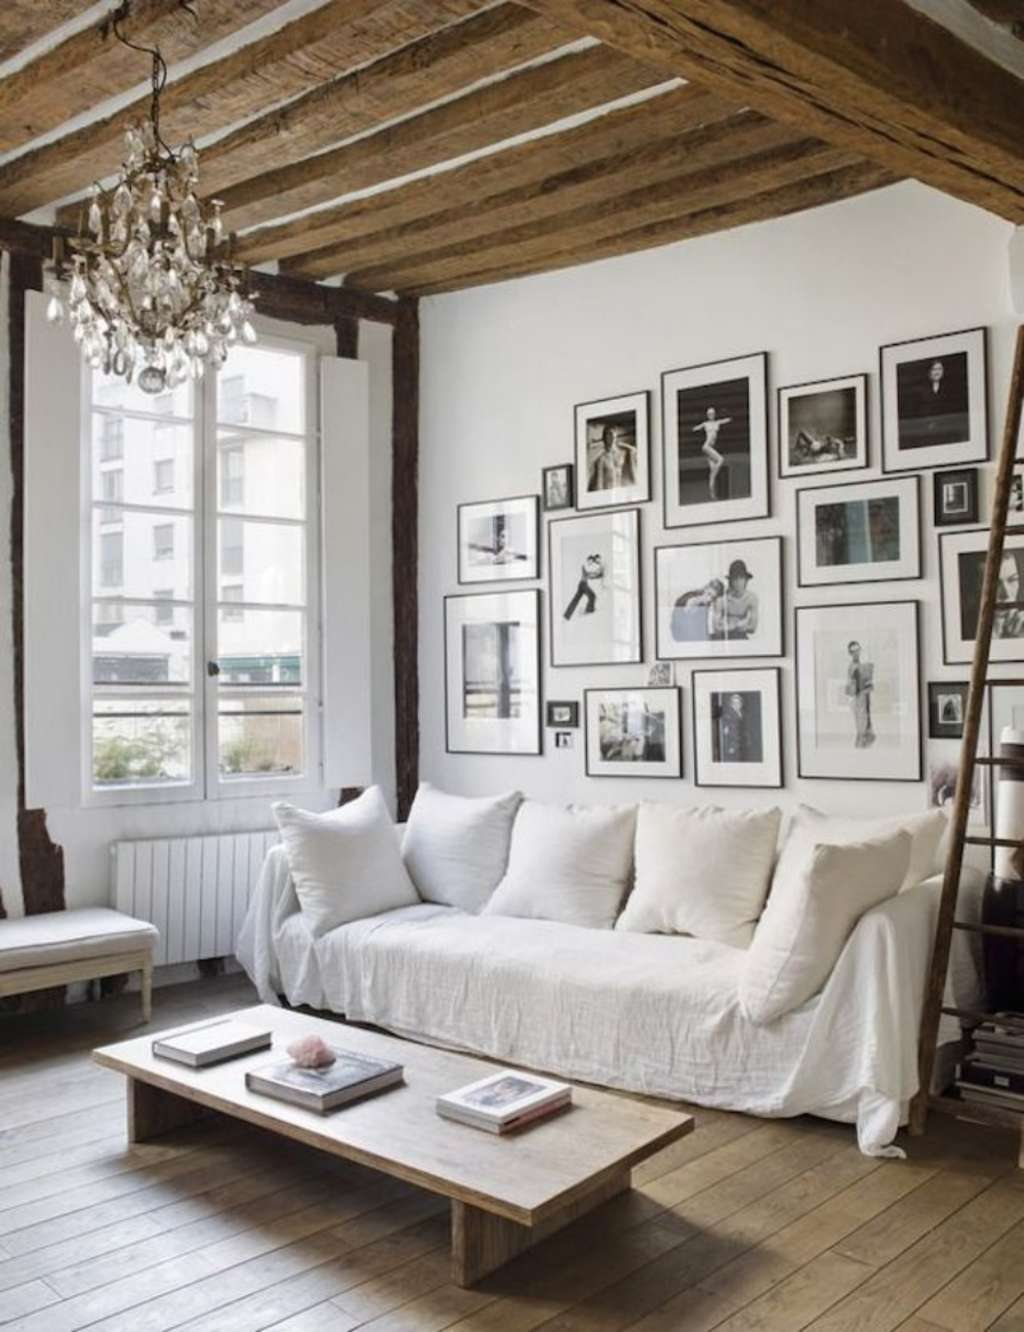 Where paris meets new york a chic black and white apartment 98cac5b8824ffa9dfec076061c9bc13f5981f2d1